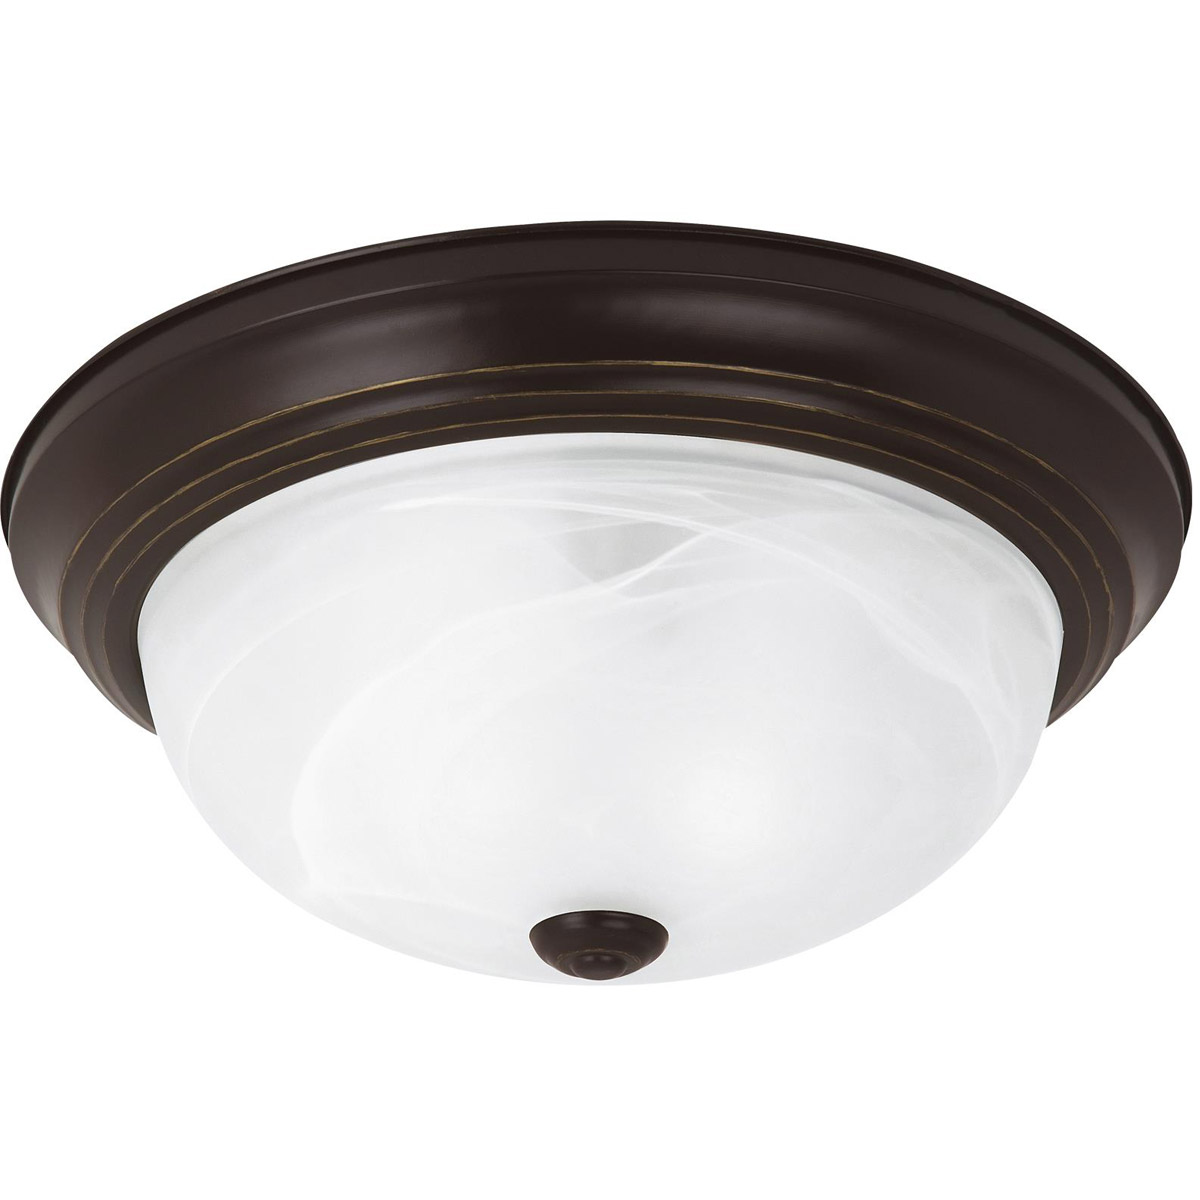 Sea Gull 75940-782 Windgate 1 Light 11 inch Heirloom Bronze Flush Mount Ceiling Light in Standard photo